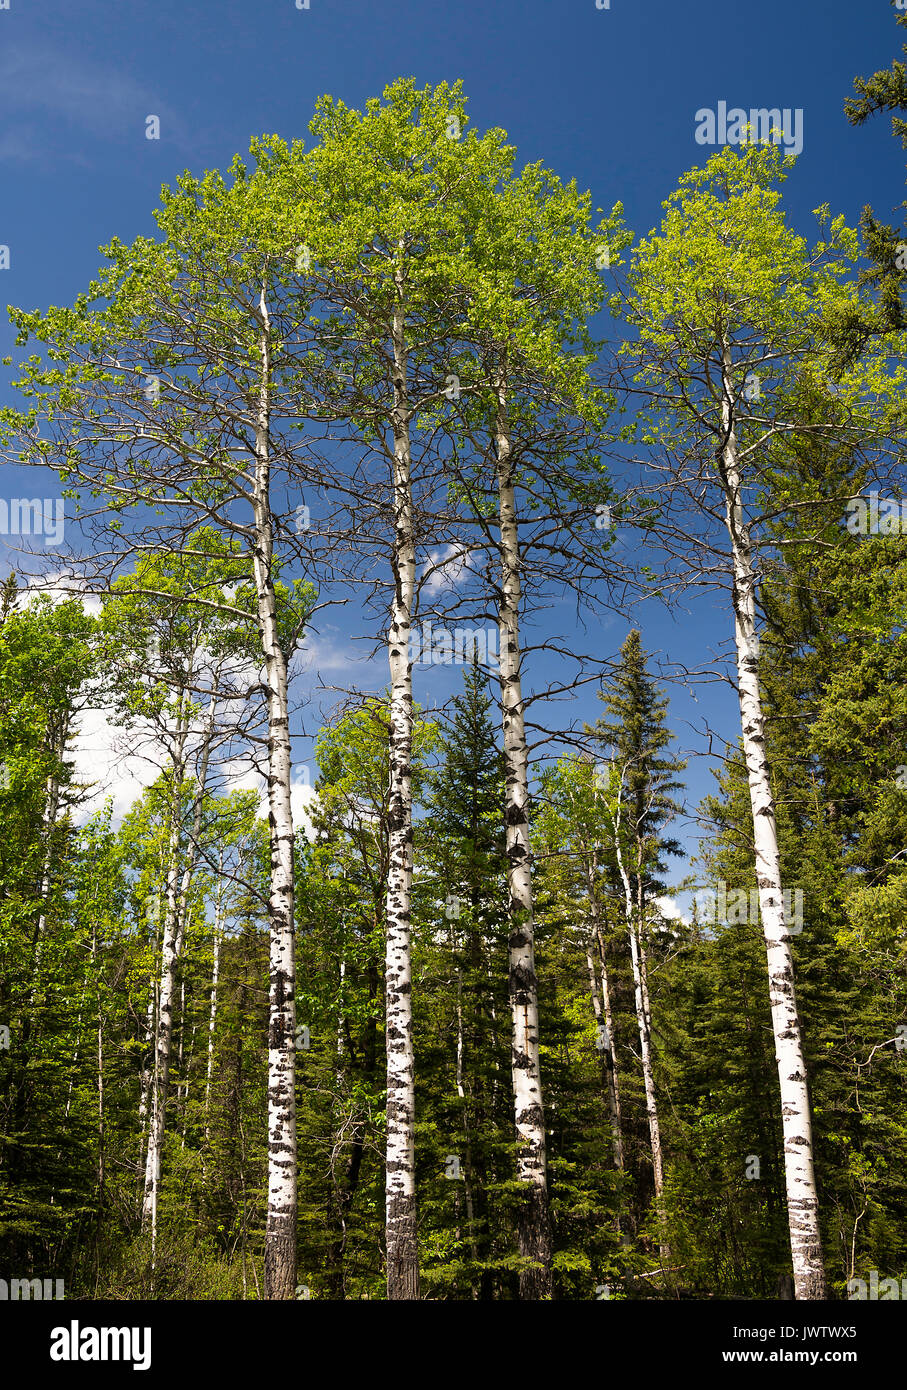 Beautiful Silver Birch Trees with Clear Blue Sky in Woodland at Kananaskis Alberta Canada - Stock Image